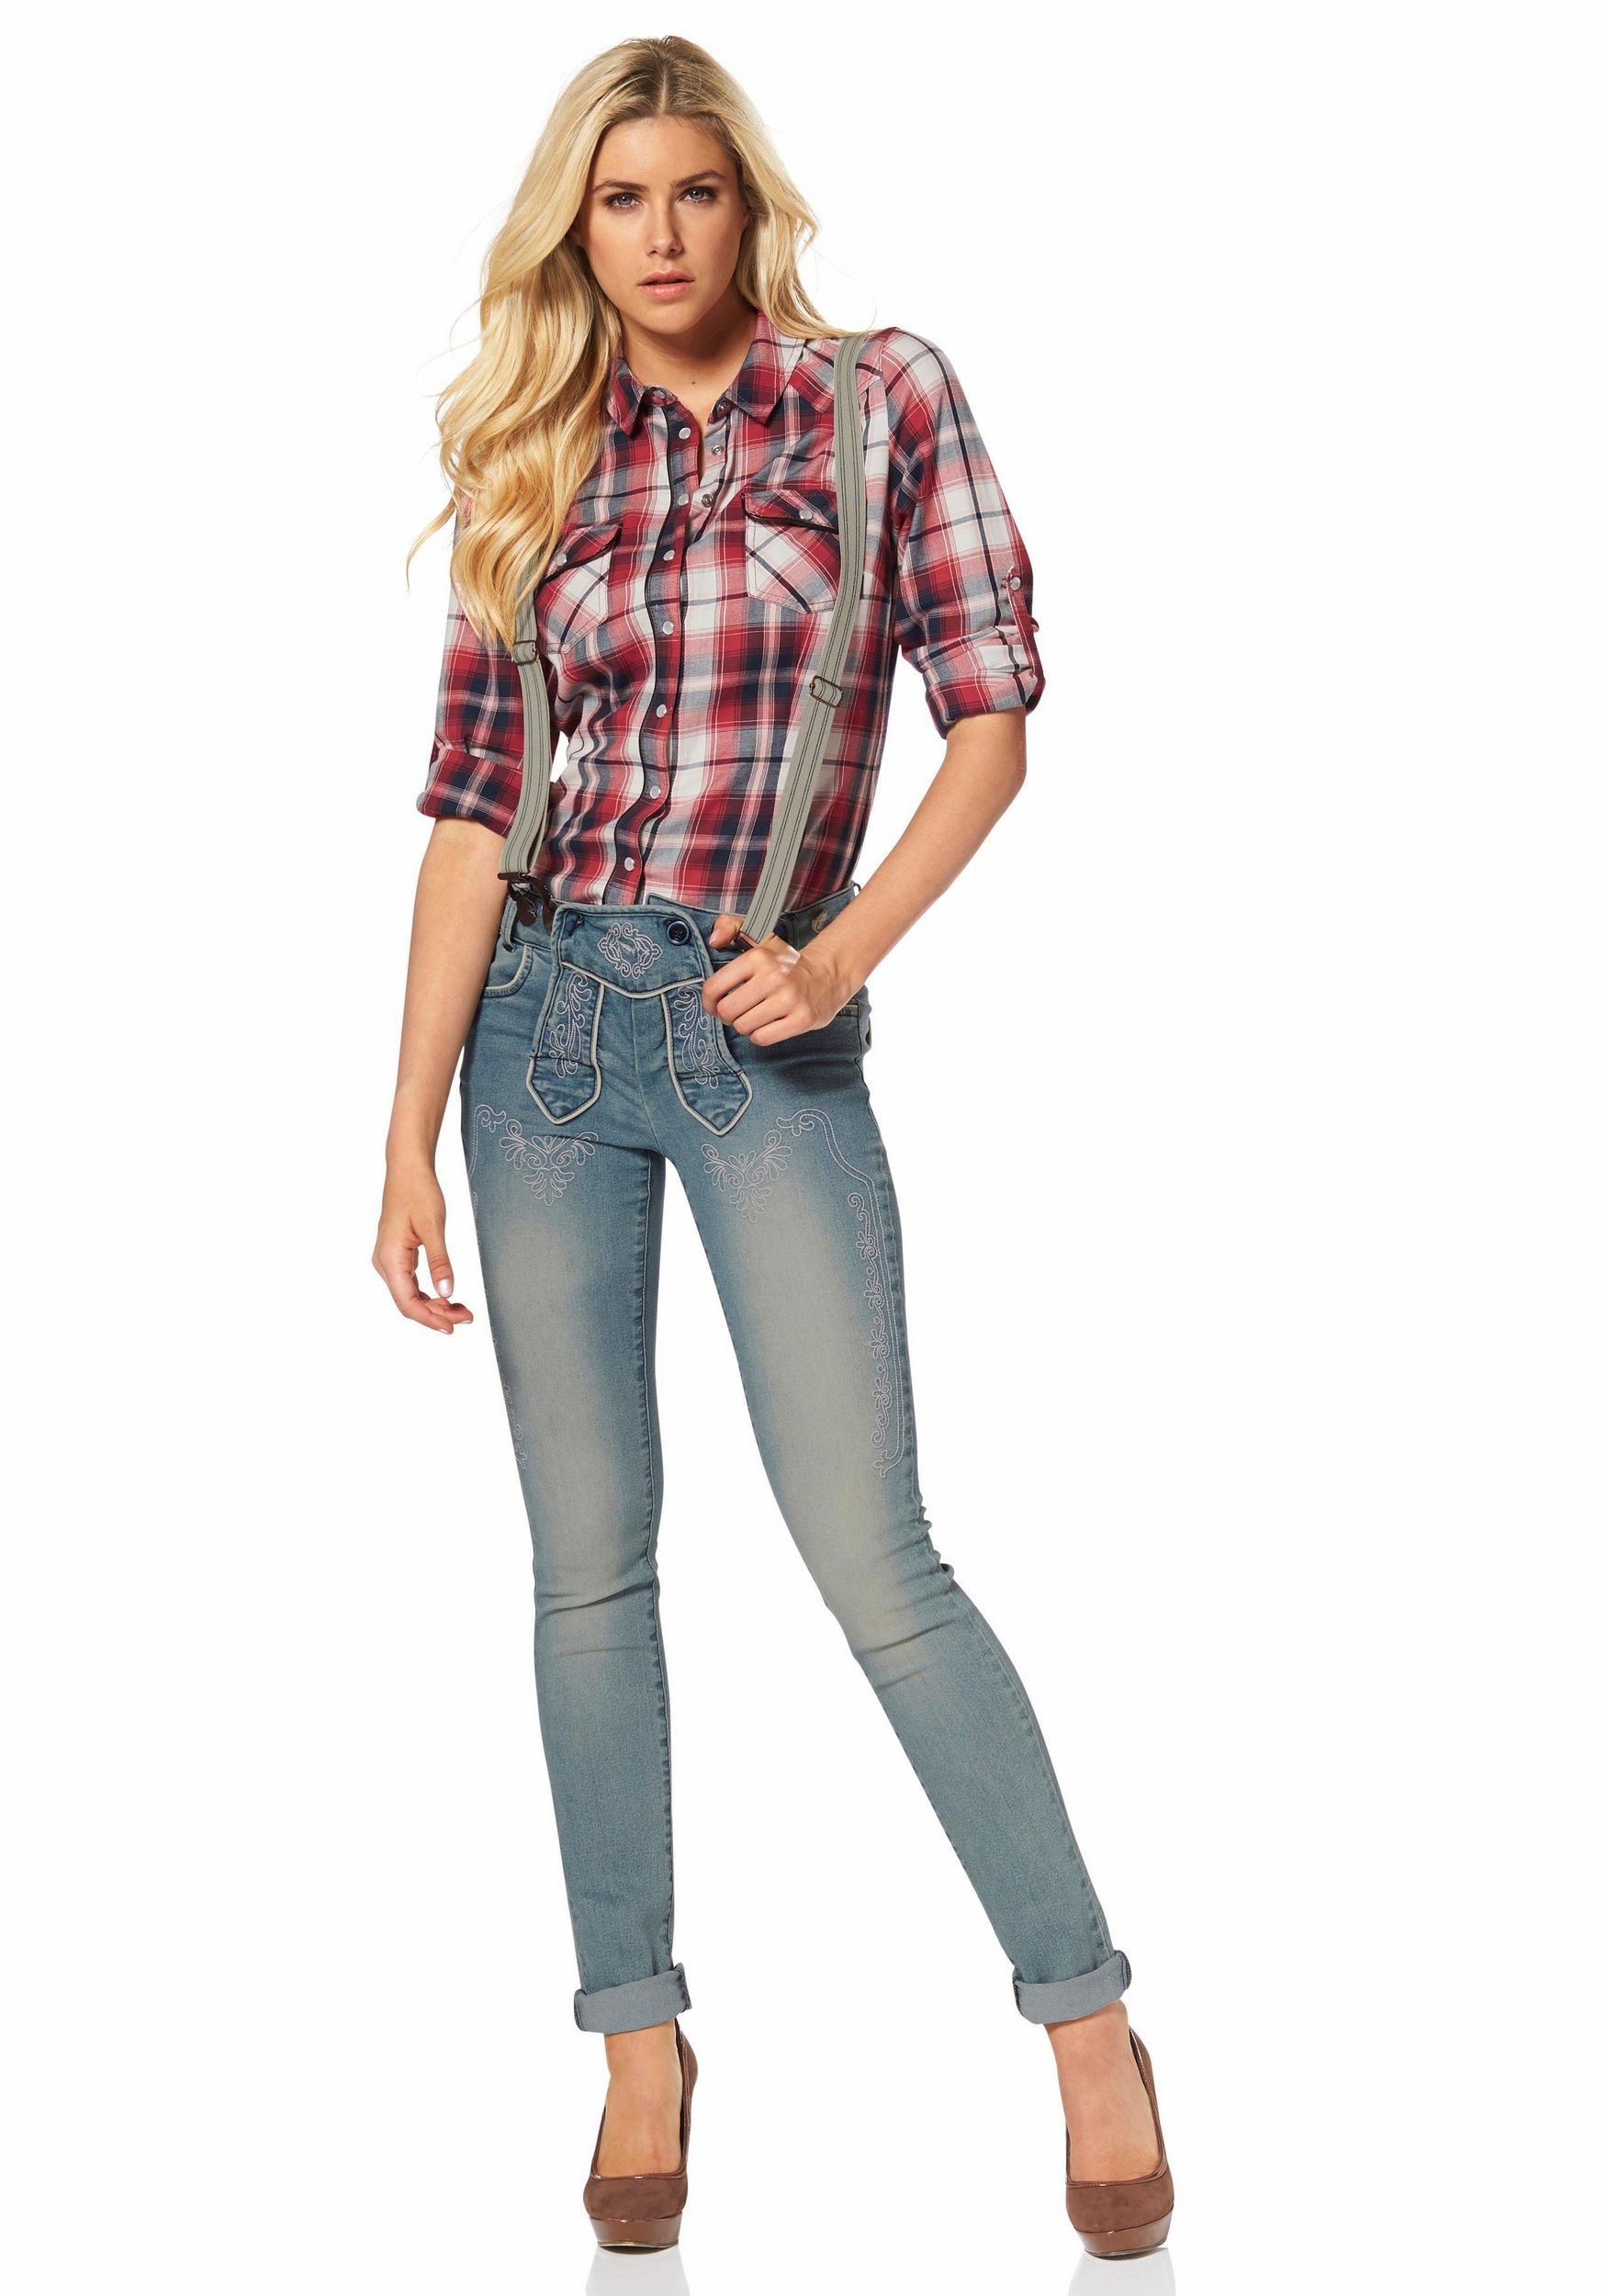 Lederhosenesque jeans with braces country style clothes